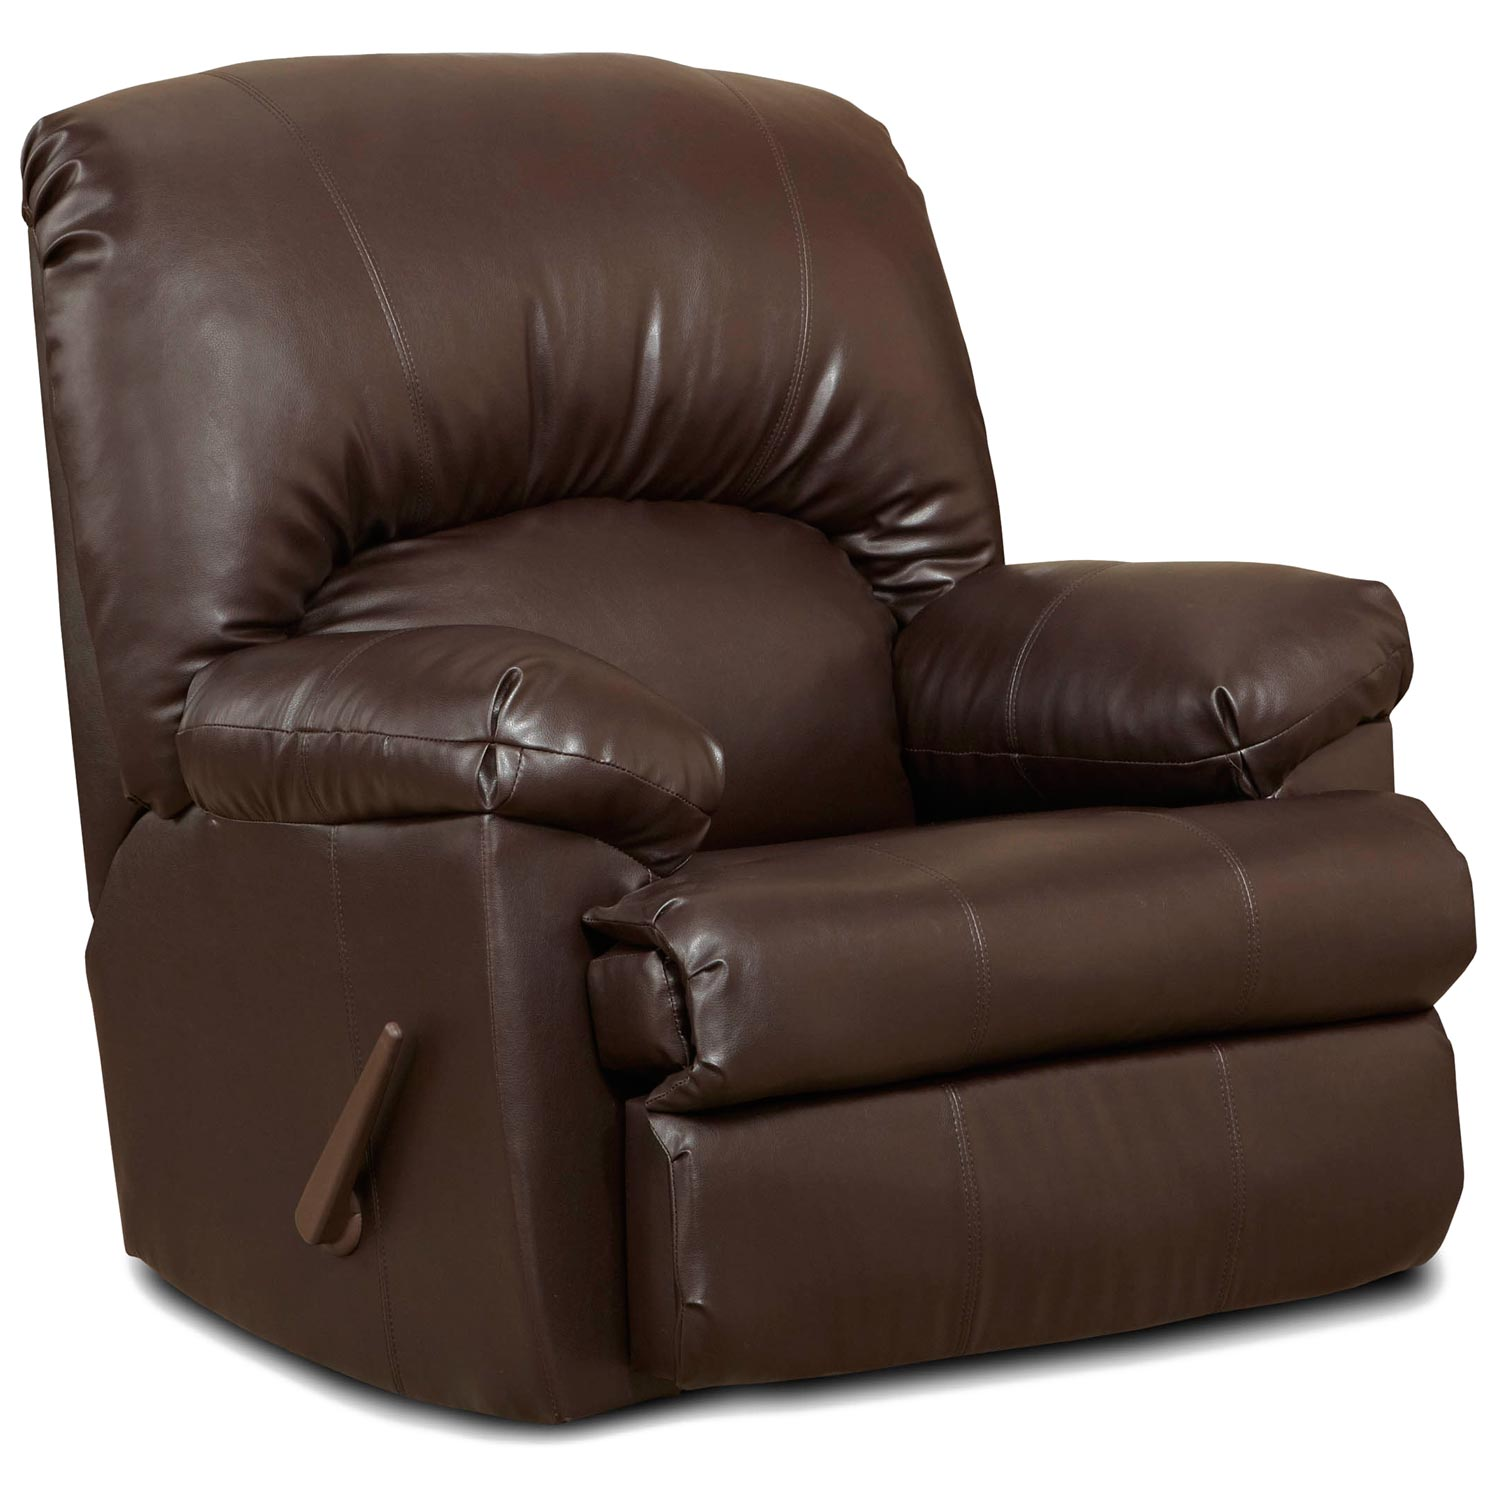 Charles Rocker Recliner Chair Brown Leather Dcg Stores